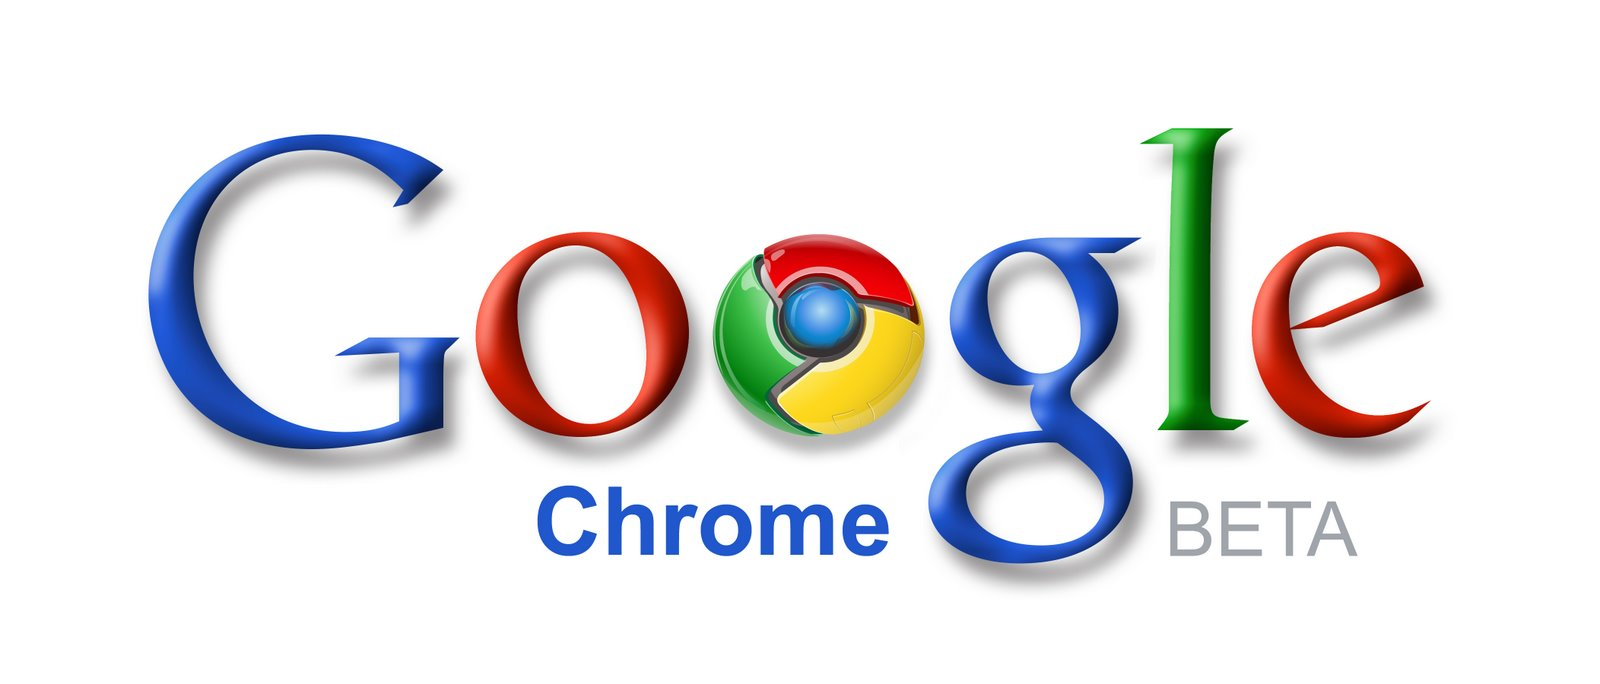 chrome softonic download